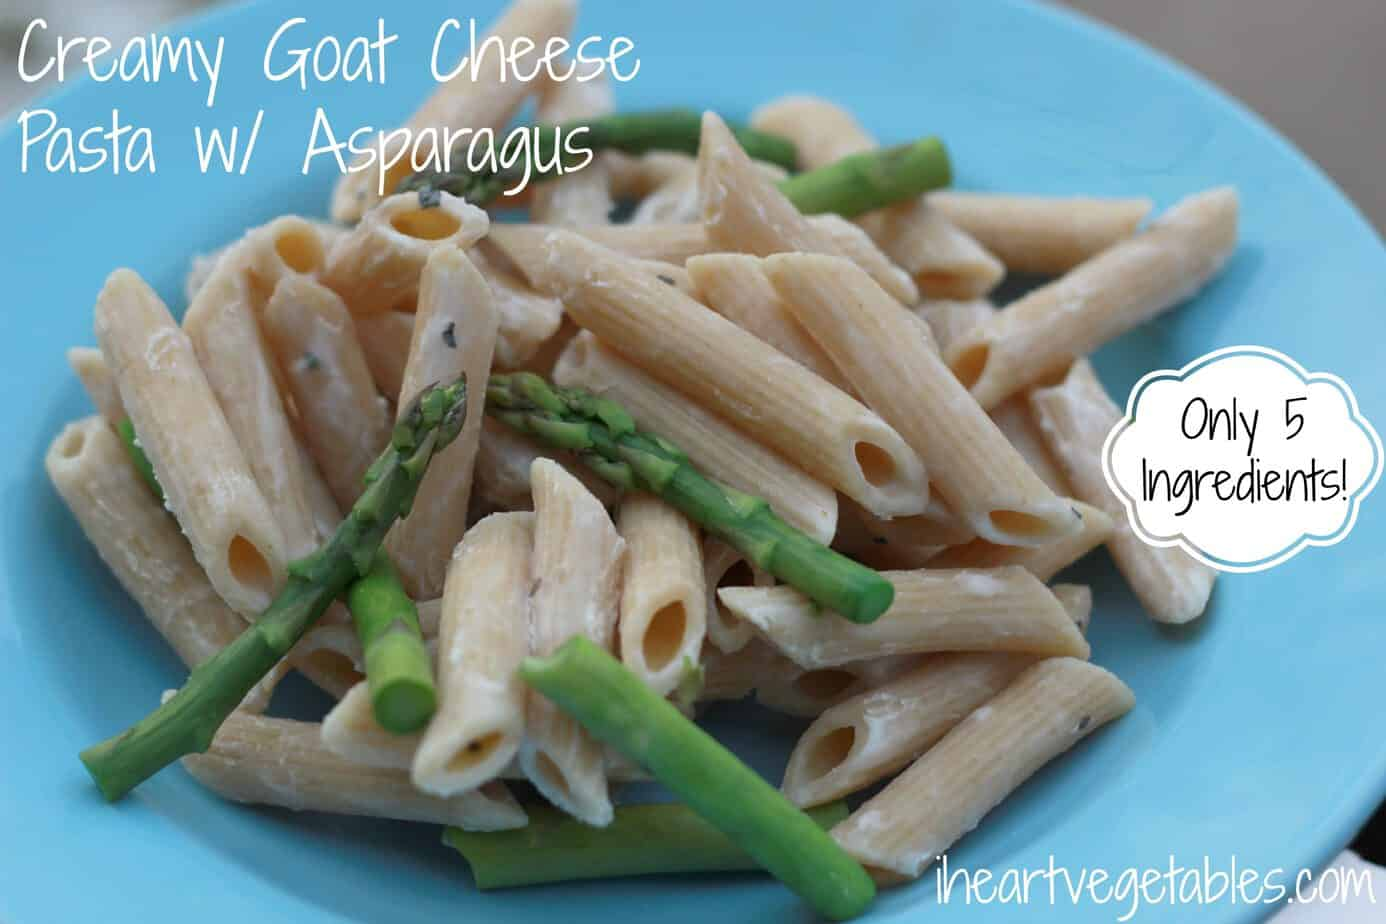 goat cheese pasta with asparagus.jpg